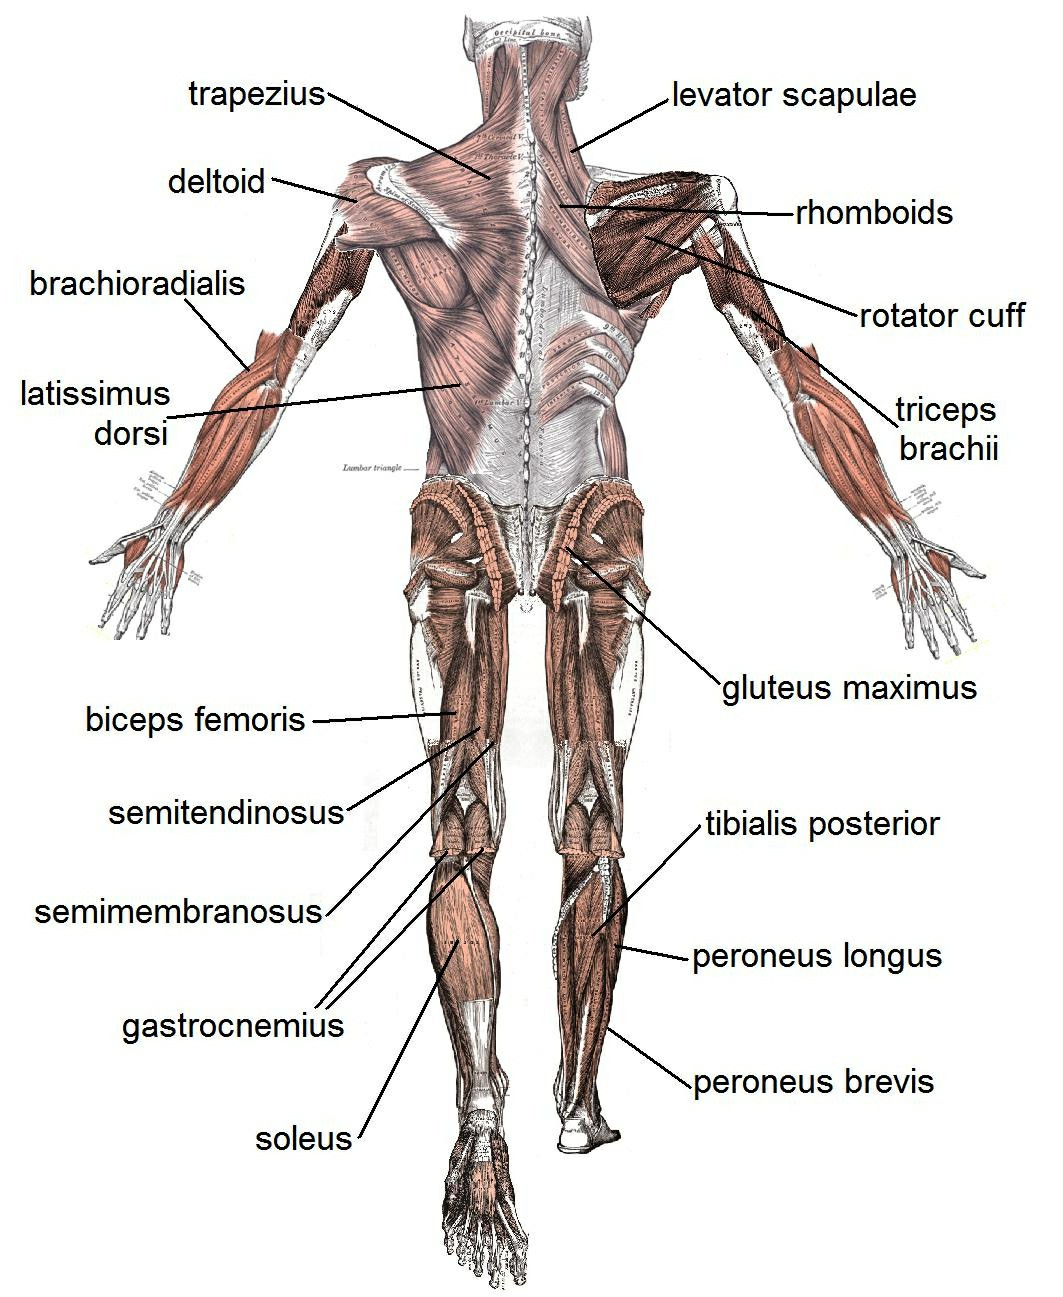 Bones And Muscles In Human Body The Basic Muscles In The Human Body | These Bones Of Mine Pictures Wallpapers